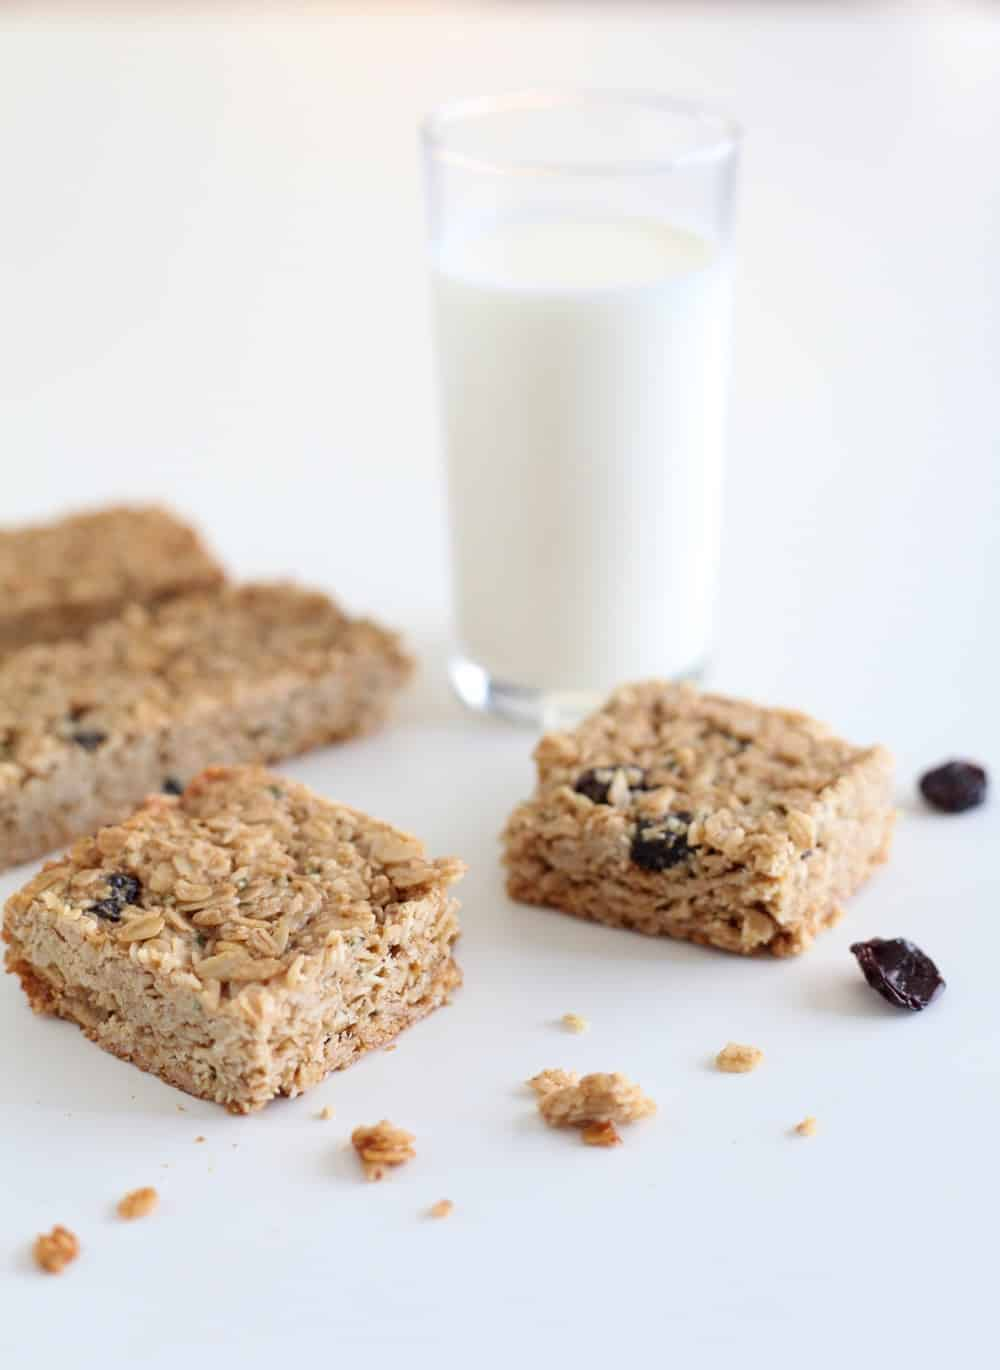 Tahini and dried cherry granola bars next to a glass of milk